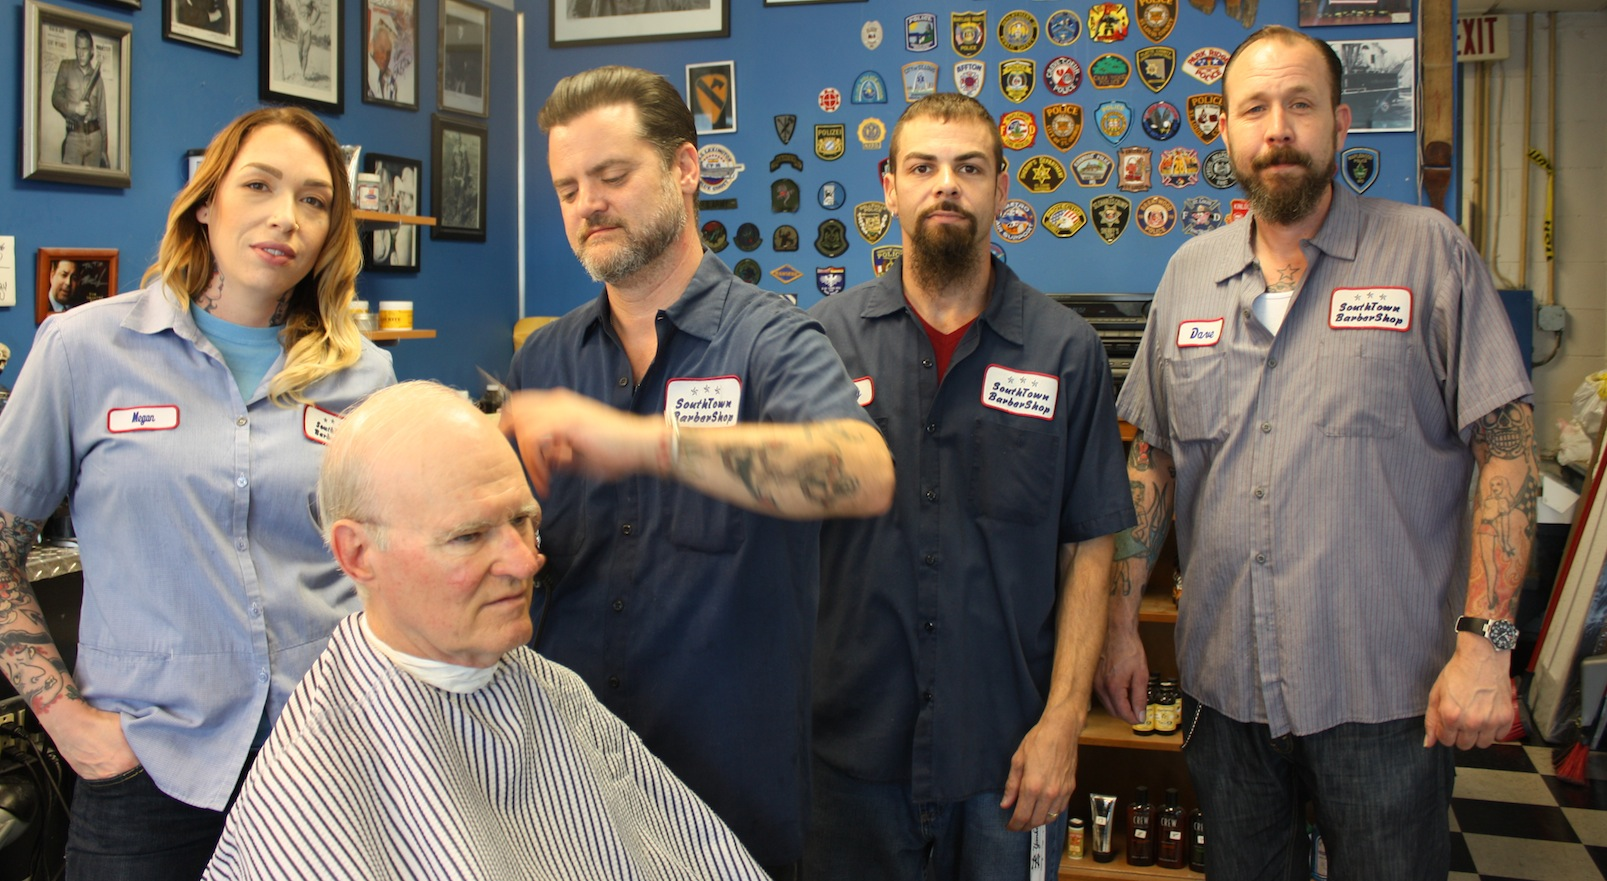 Proud to be union, Southtown Barbershop offers union members a cut ...